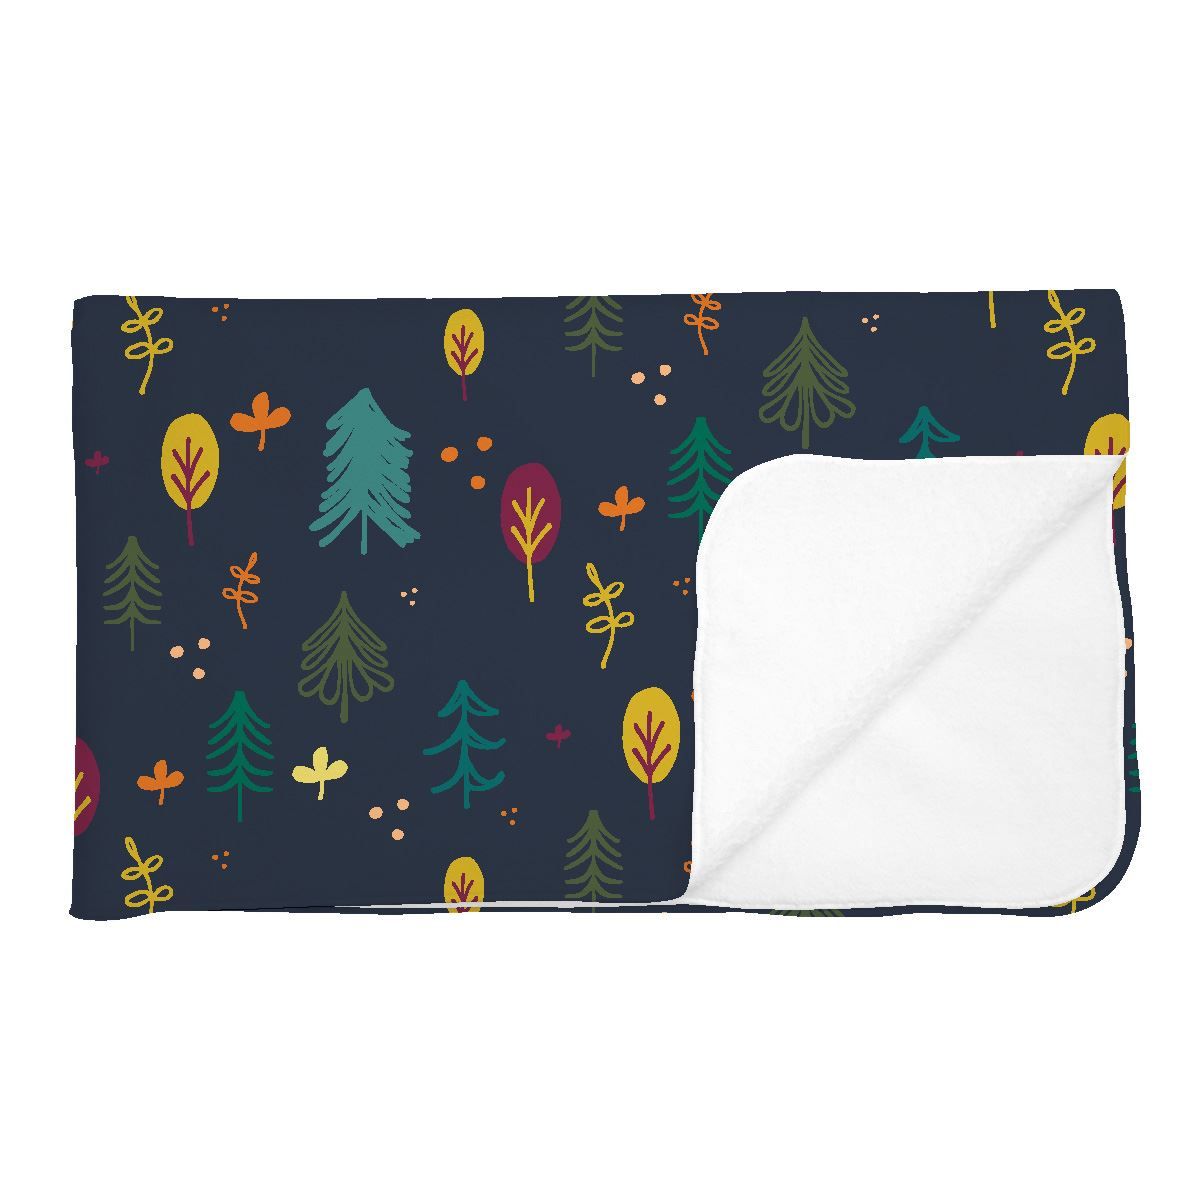 Asher's Autumn Forest | Adult Size Blanket